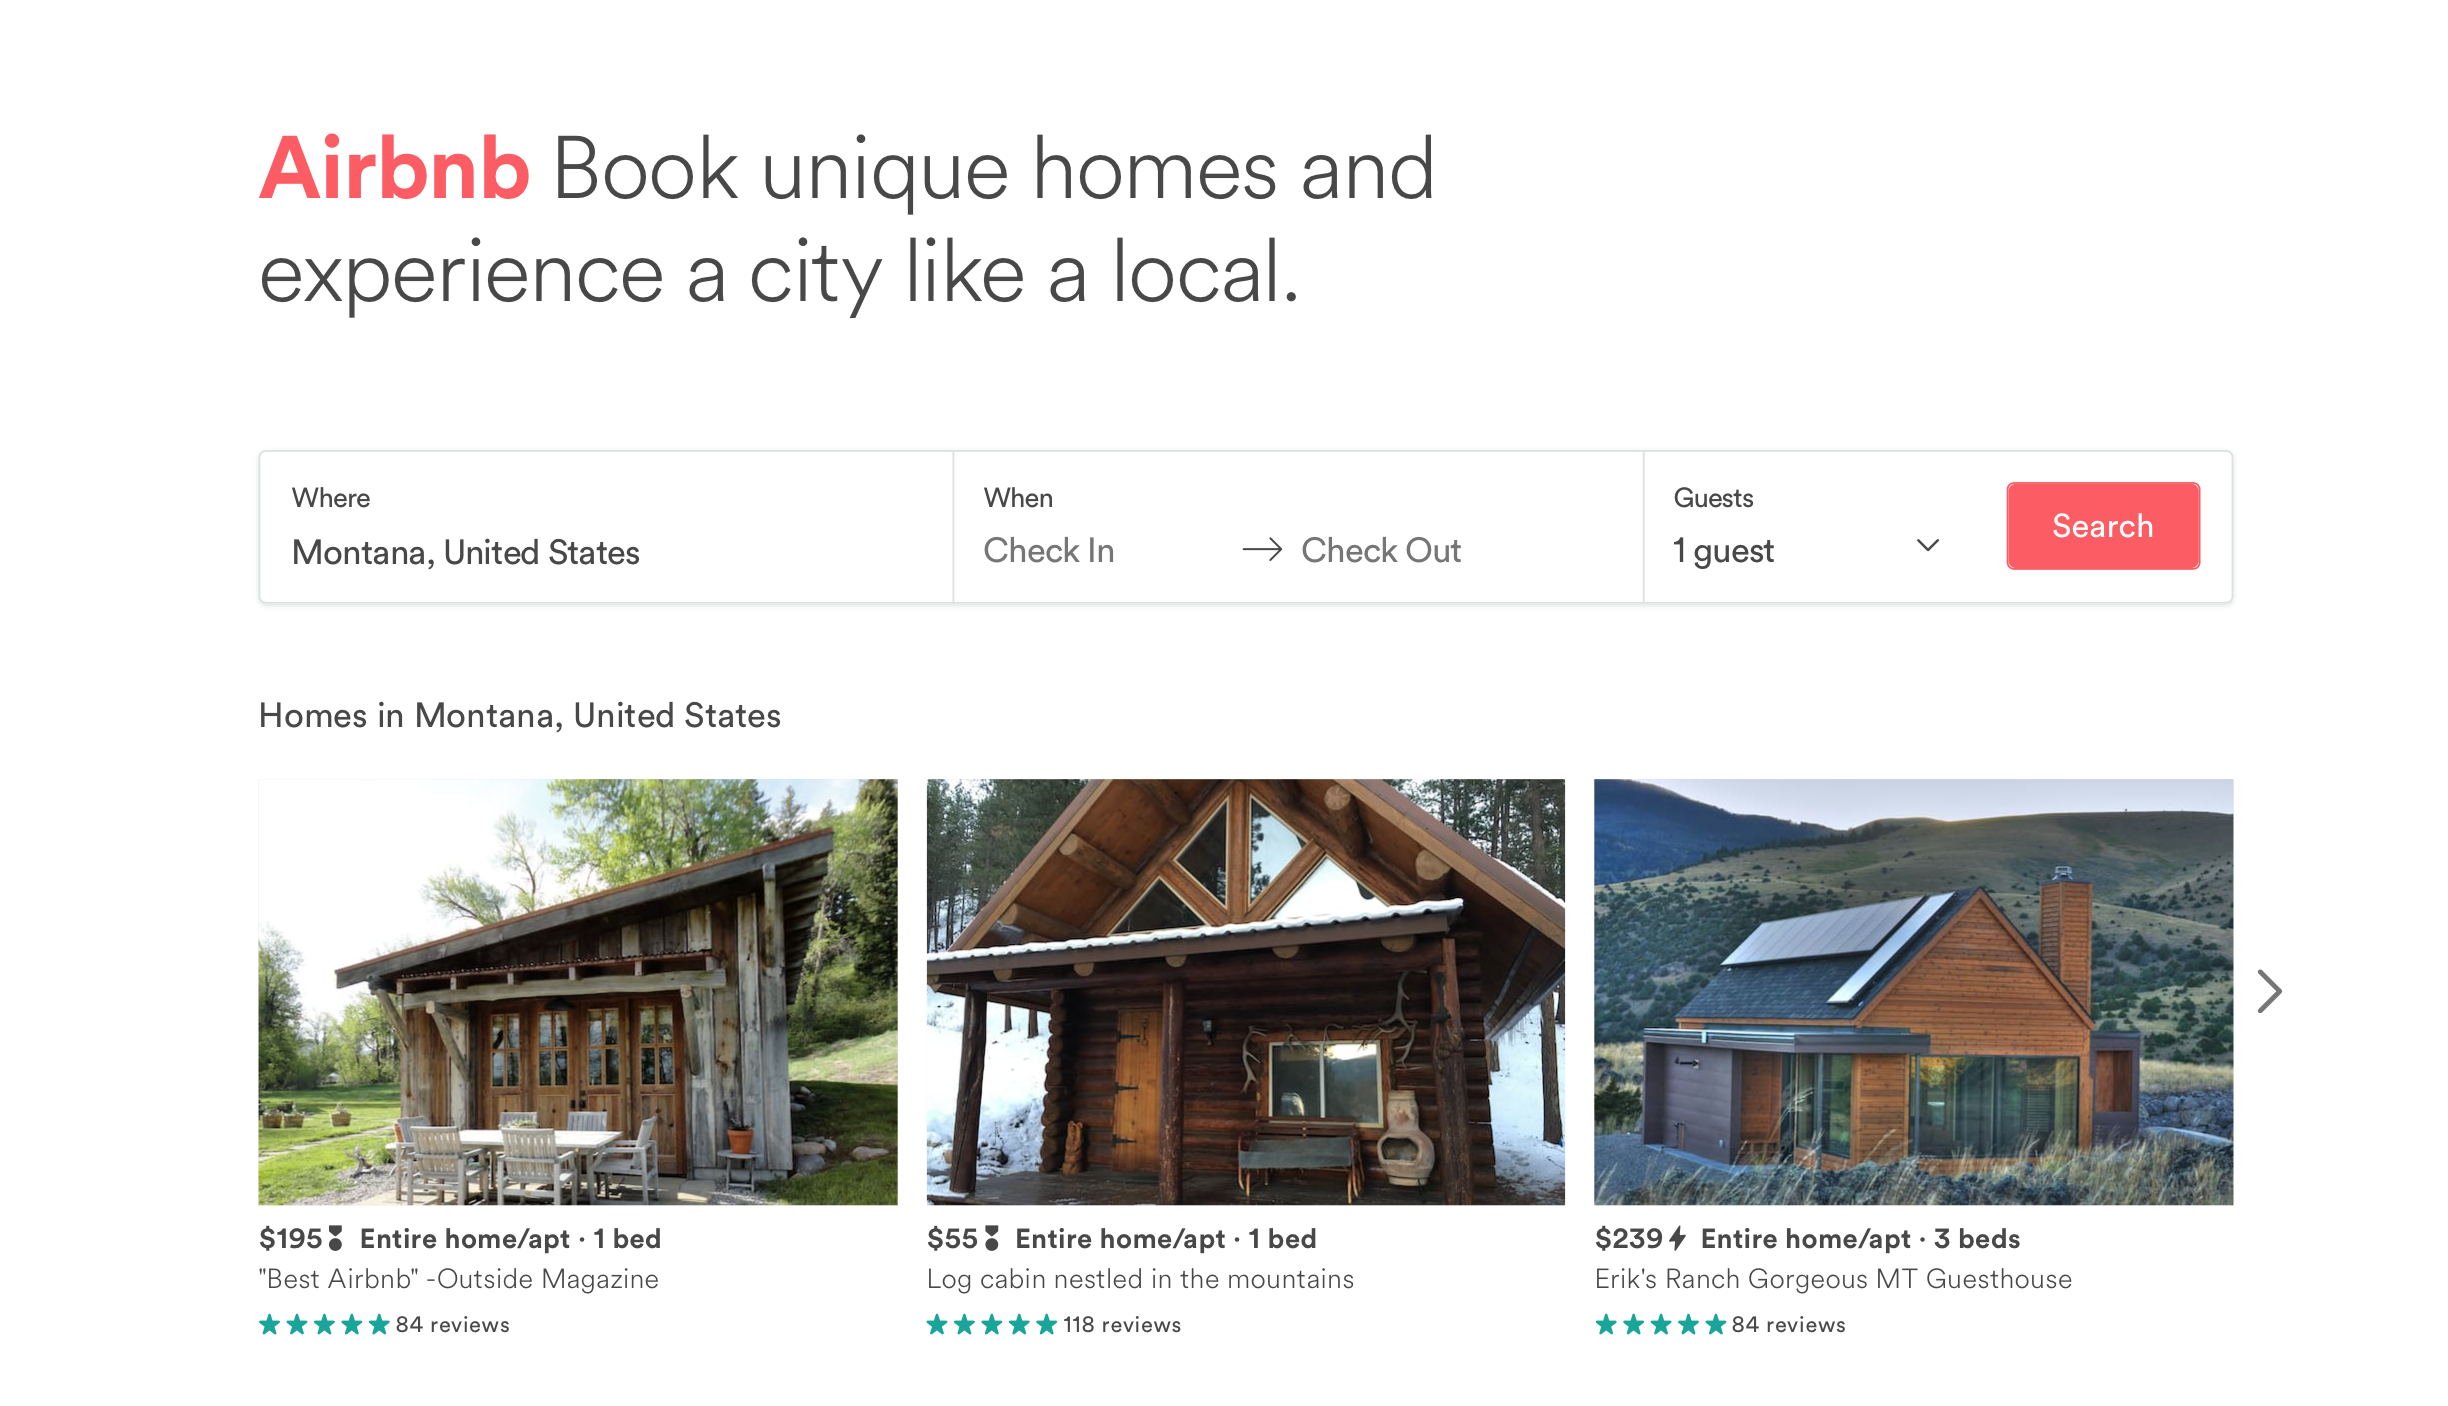 Image is a screenshot for informational purposes from  airbnb.com